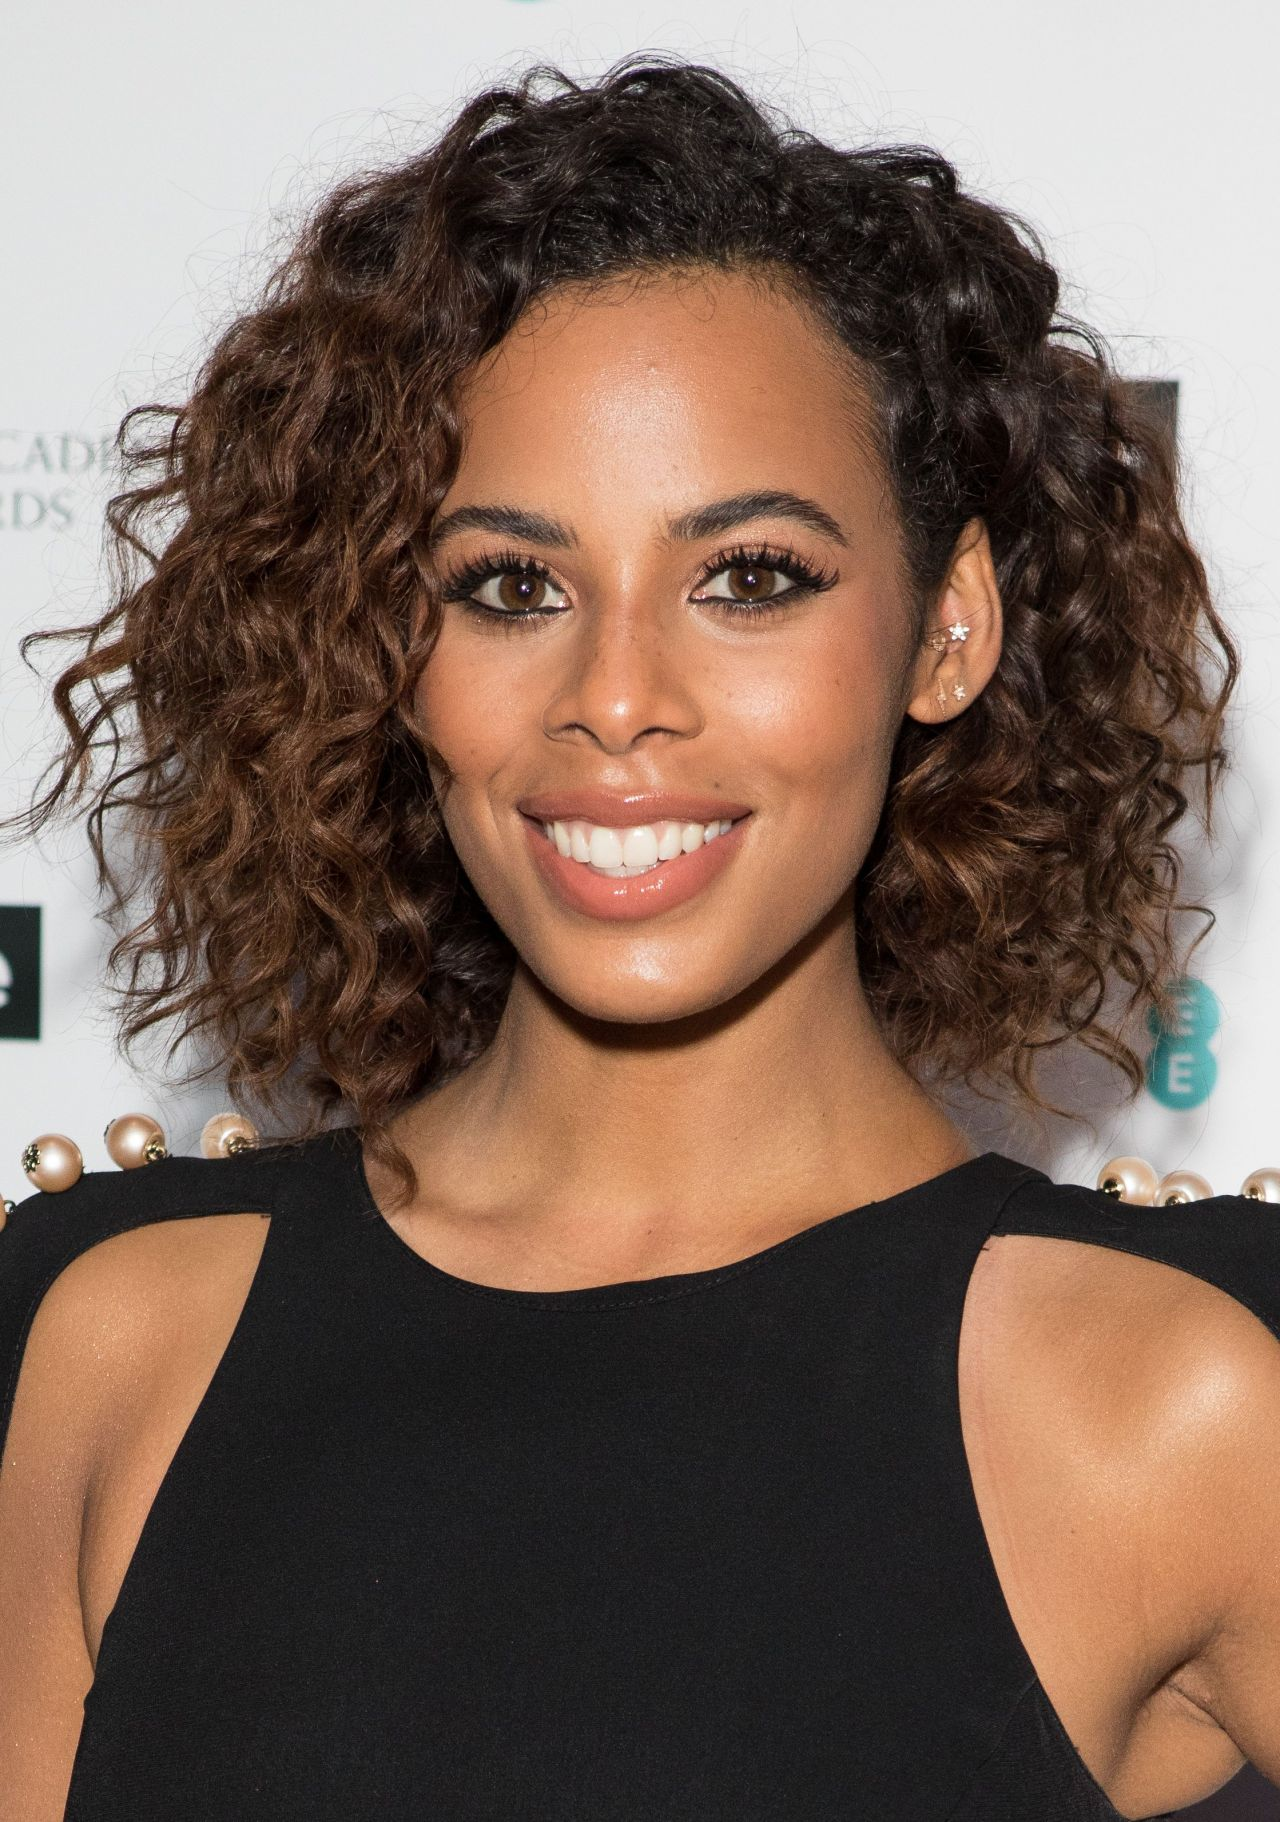 rochelle humes - photo #16